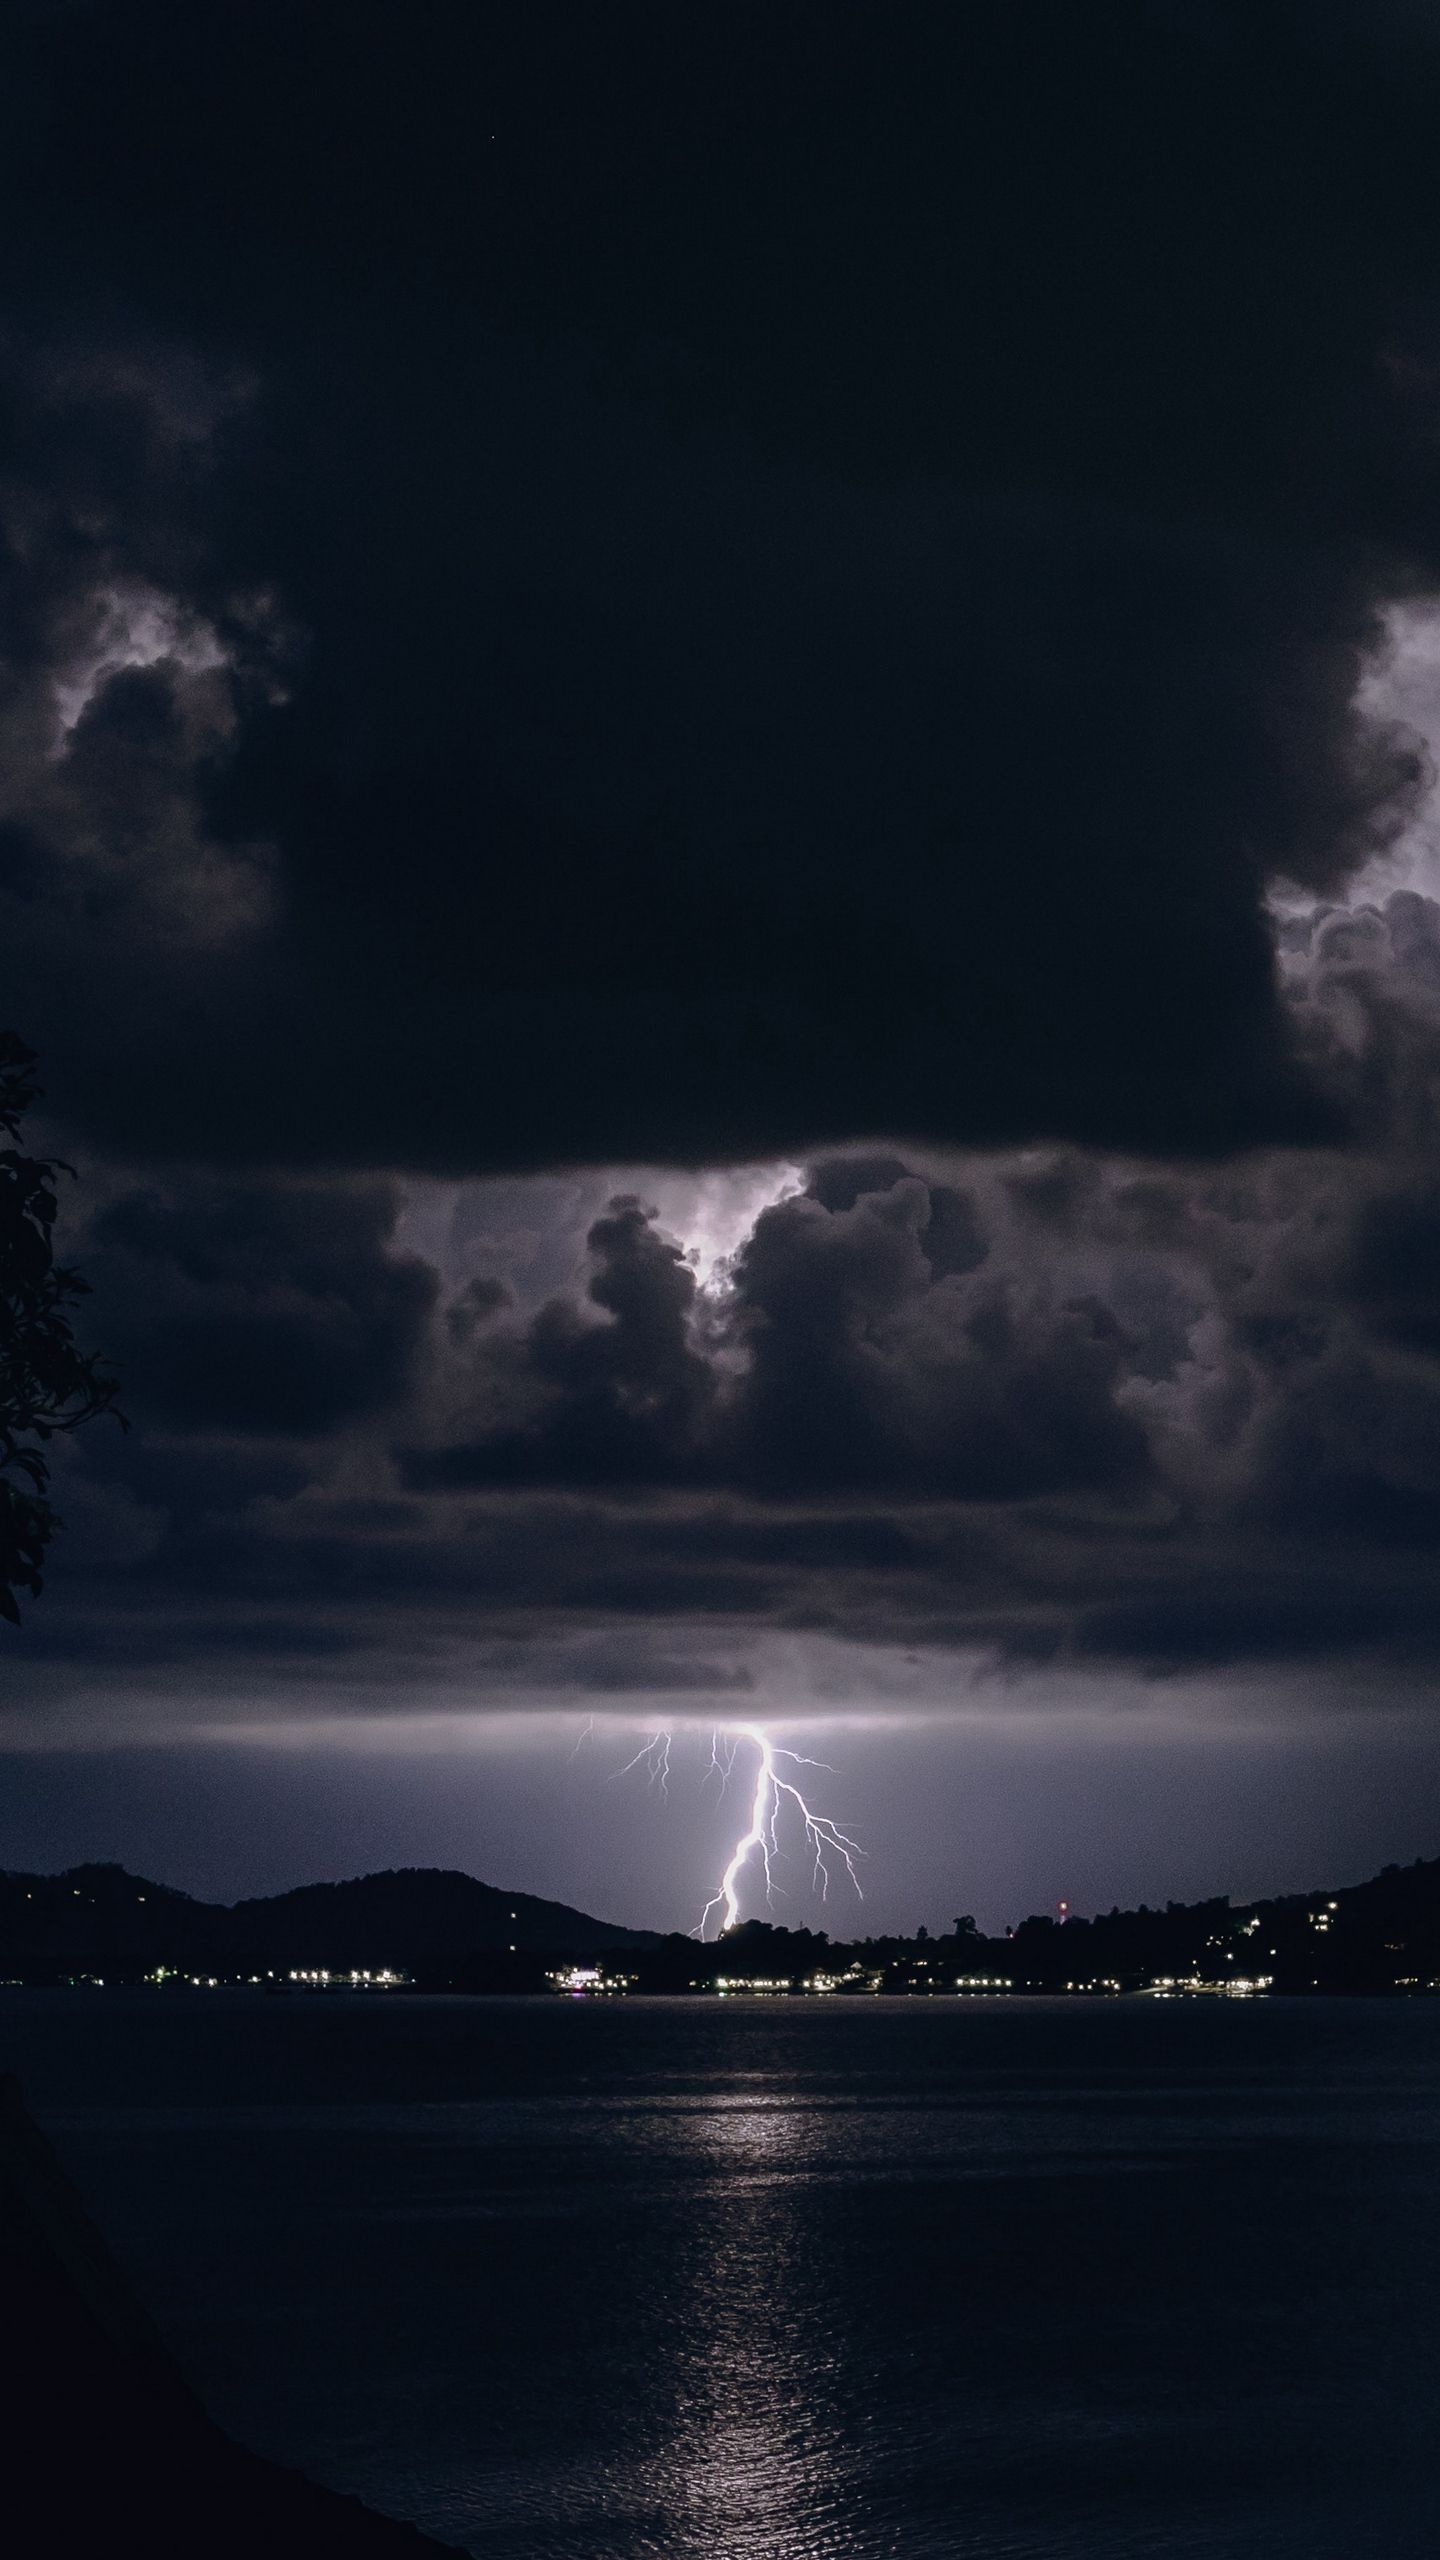 1440x2560 Download wallpaper 1440x2560 lightning, night, overcast, clouds ...